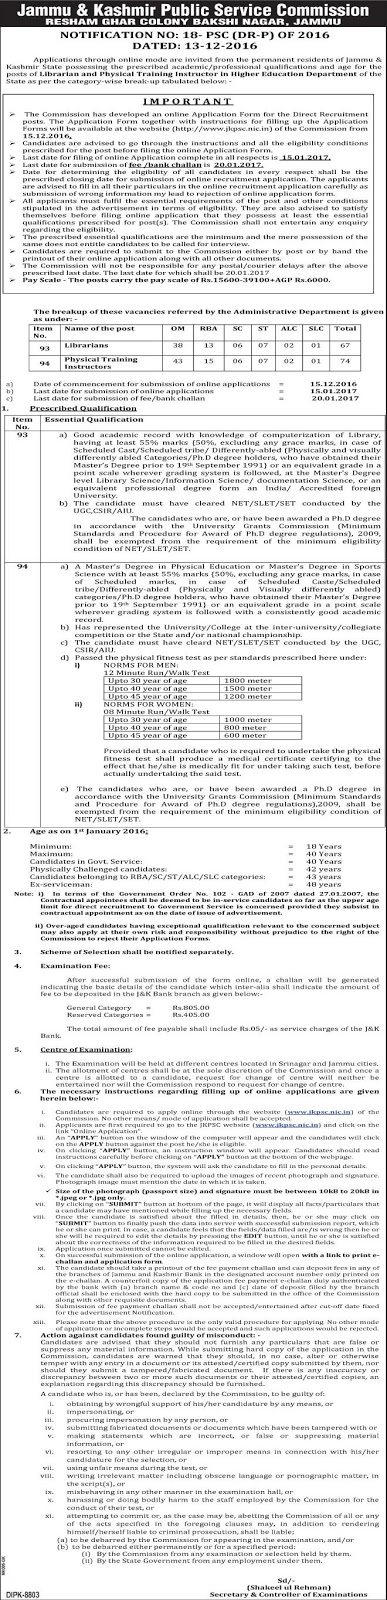 JKPSC Recruitment for 81 Librarian & PTI Posts